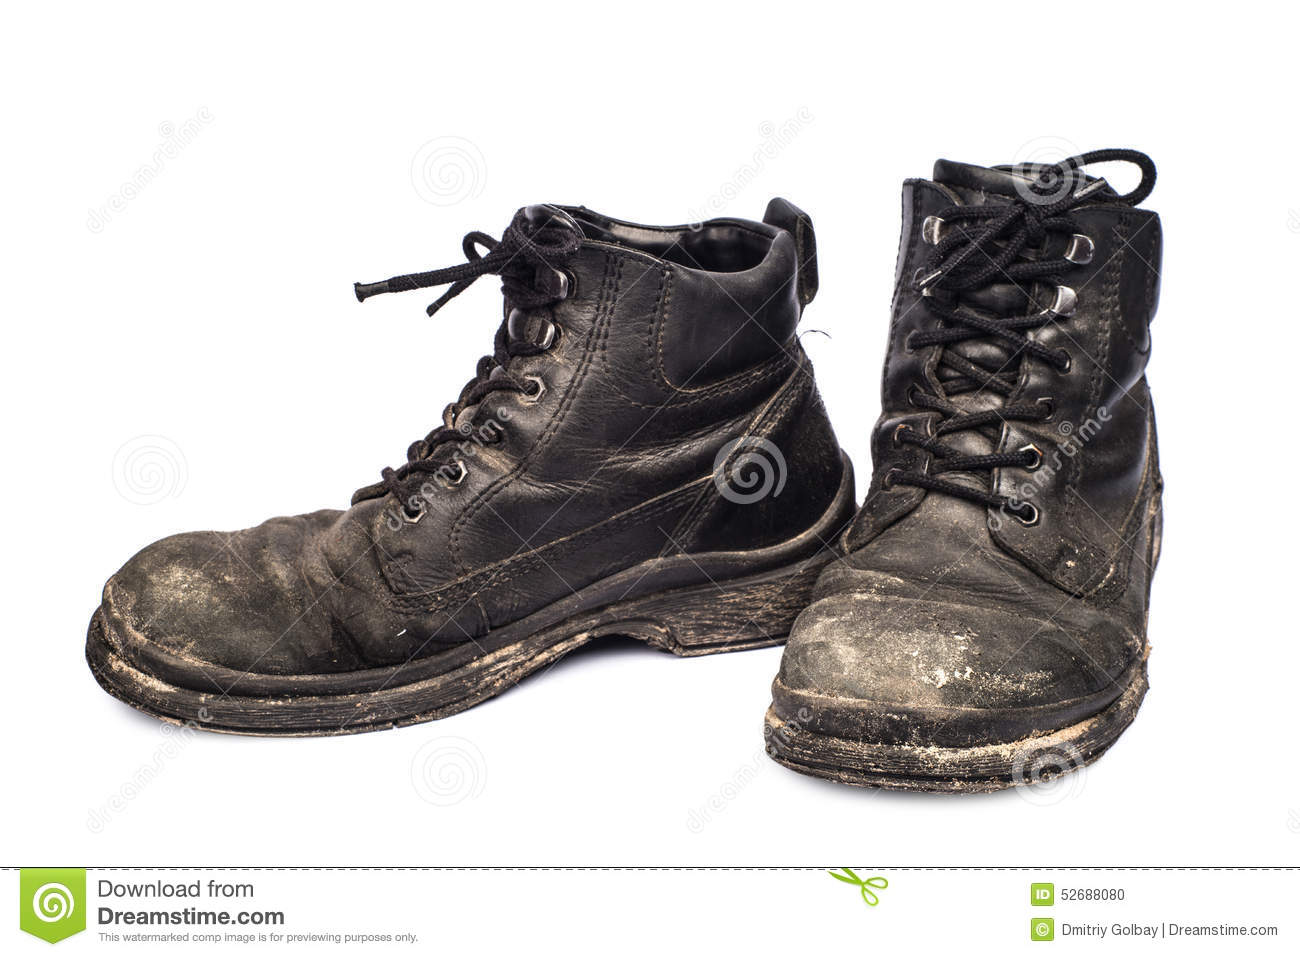 7a351862ecfa Old Boots stock photo. Image of background